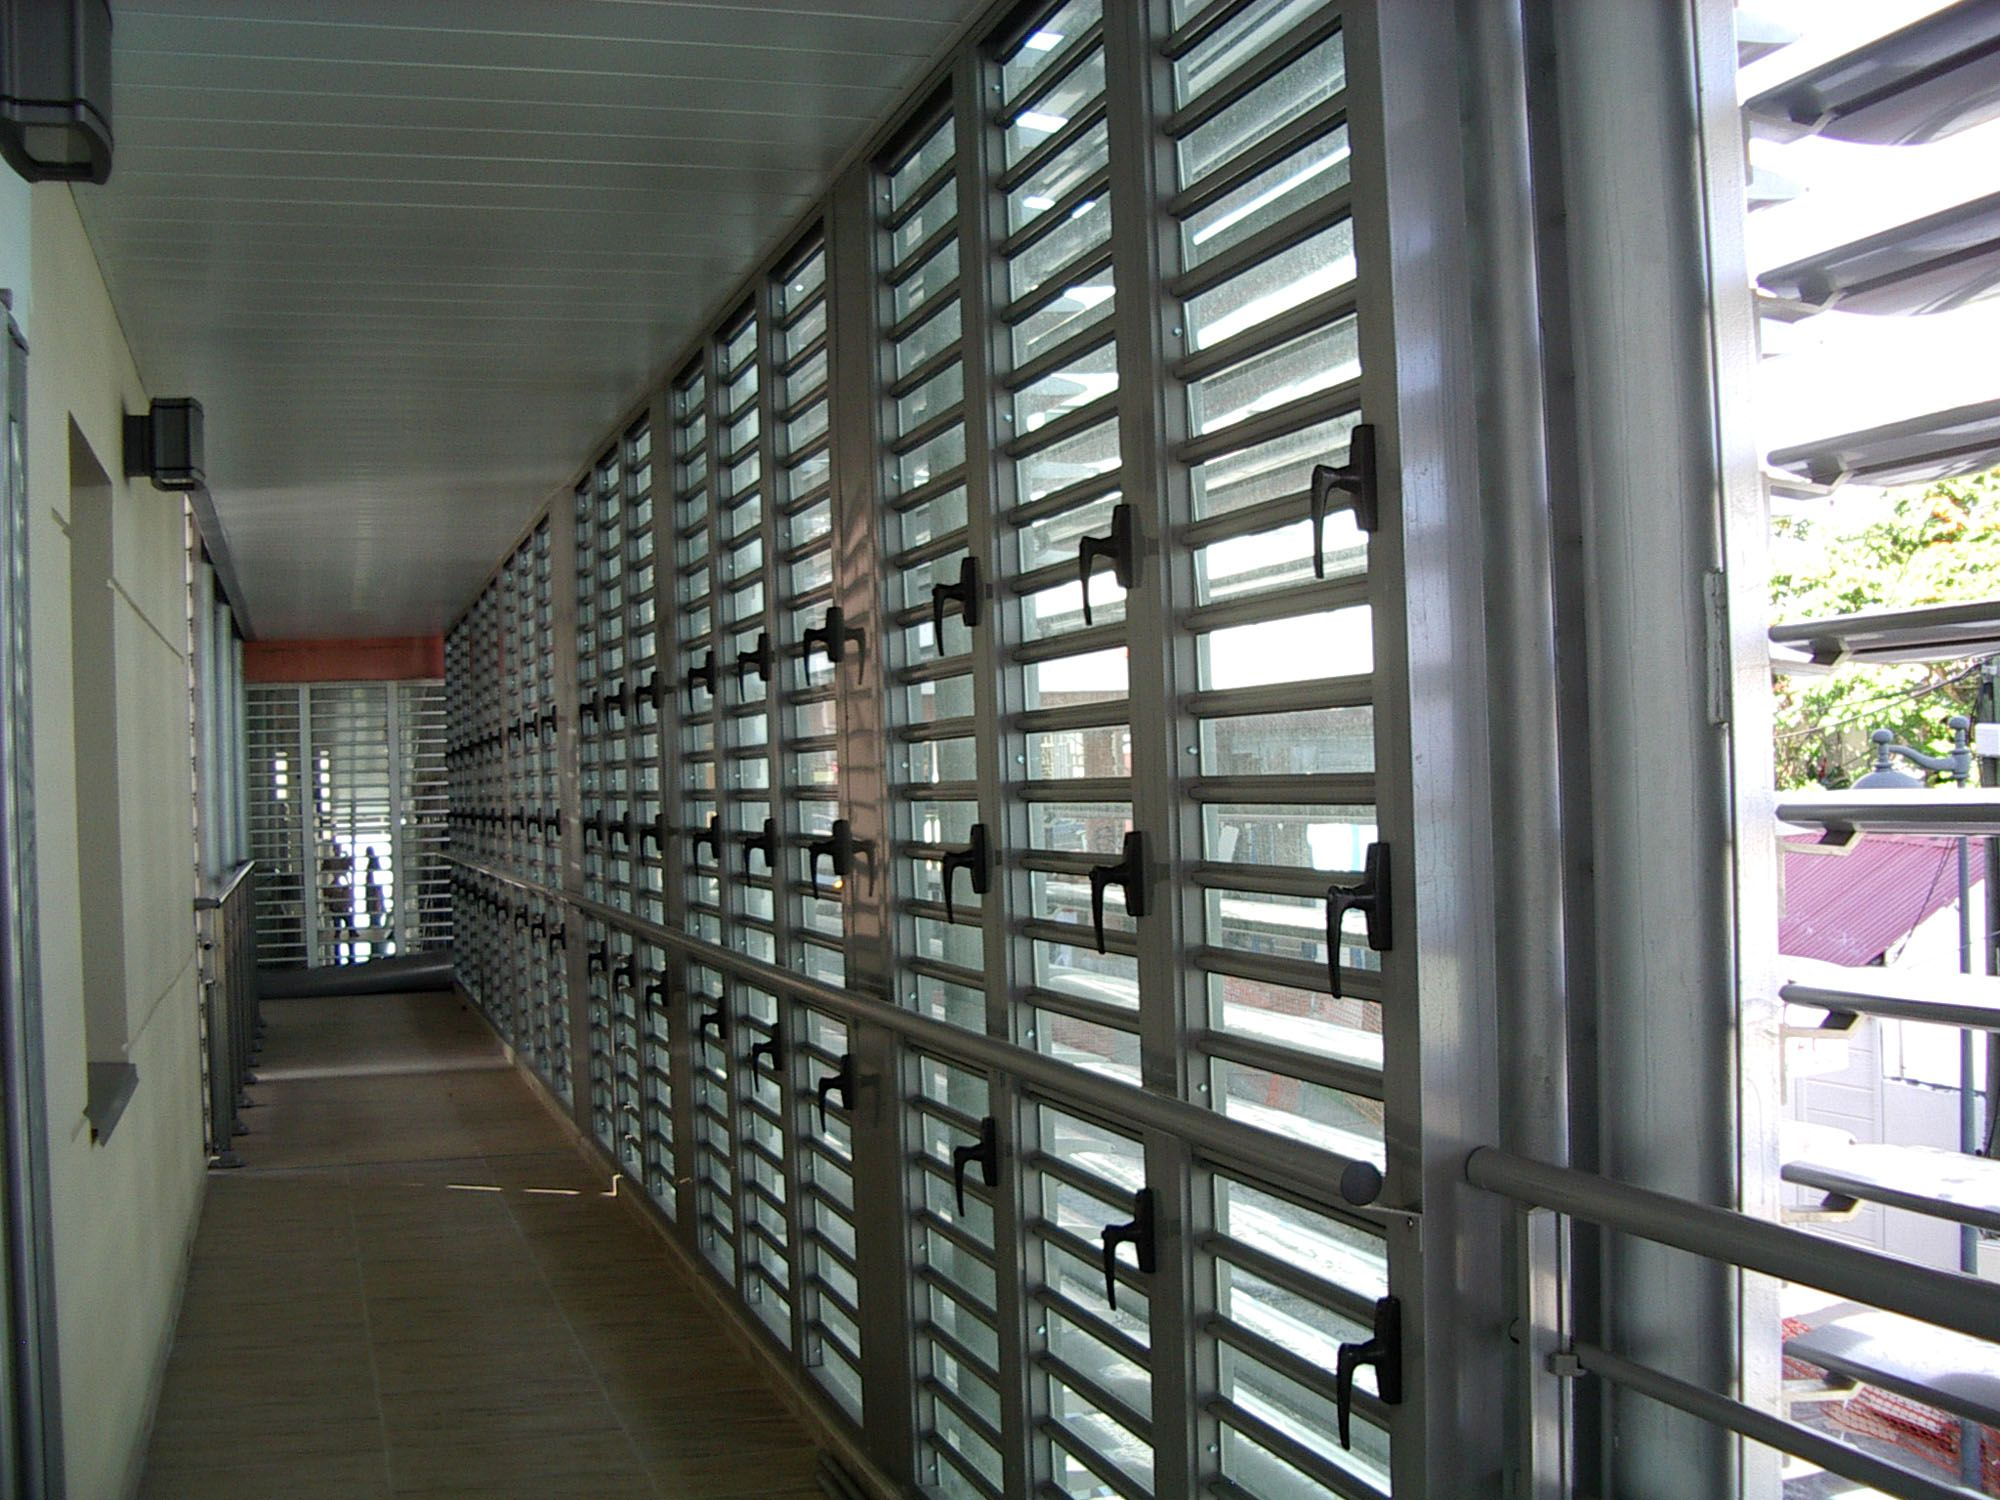 JALOUSIE : A Window Or Door Blind Made Of Fixed Or Movable Horizontal Slats.